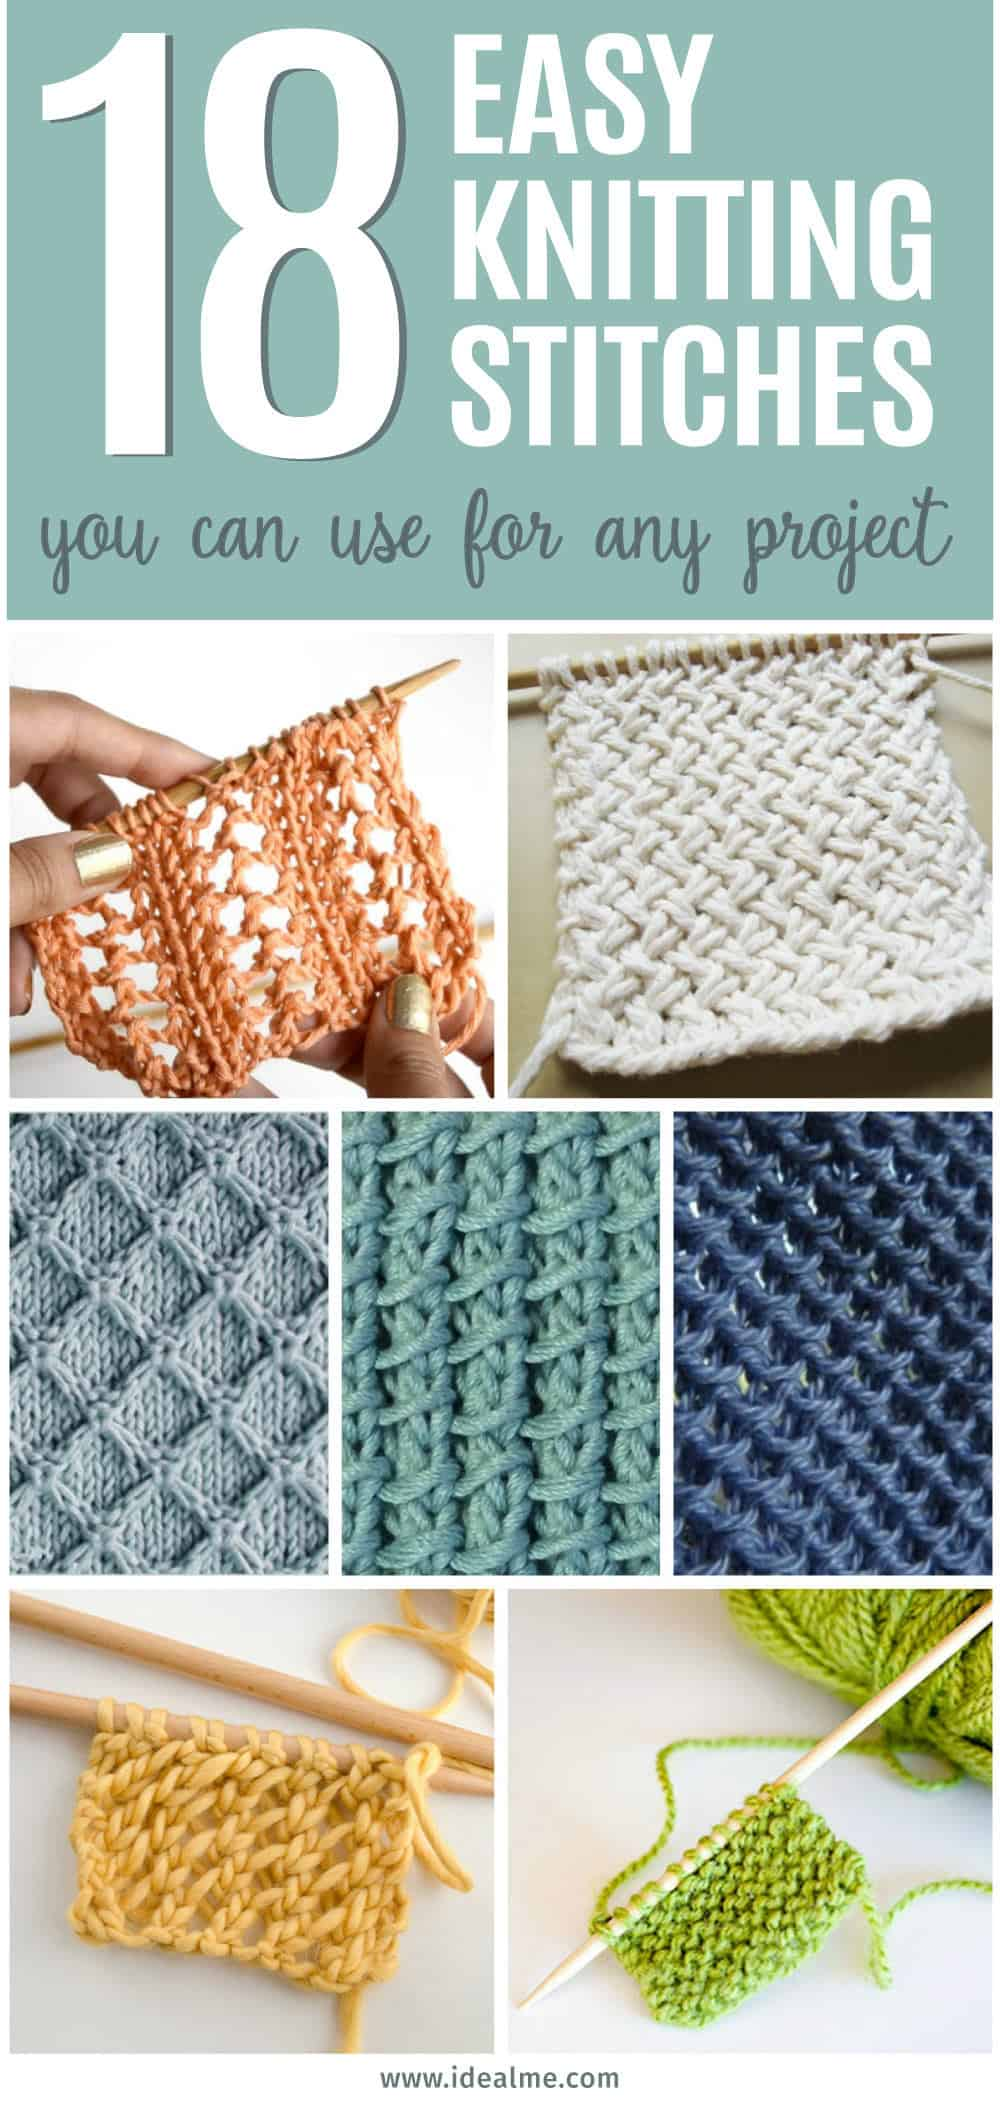 Knitting On The Net Stitches : Knitting on the net stitches comsar for